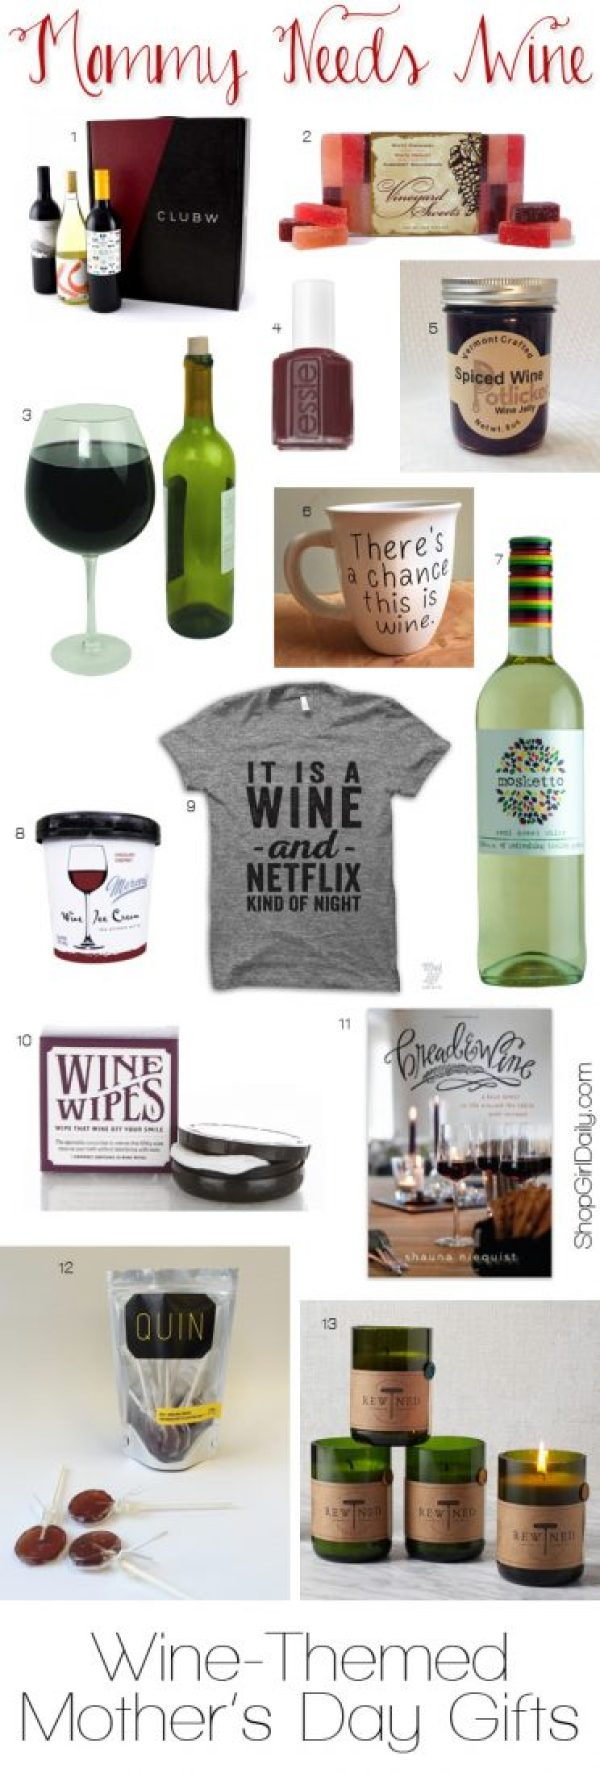 Wine-Themed Mother's Day Gifts